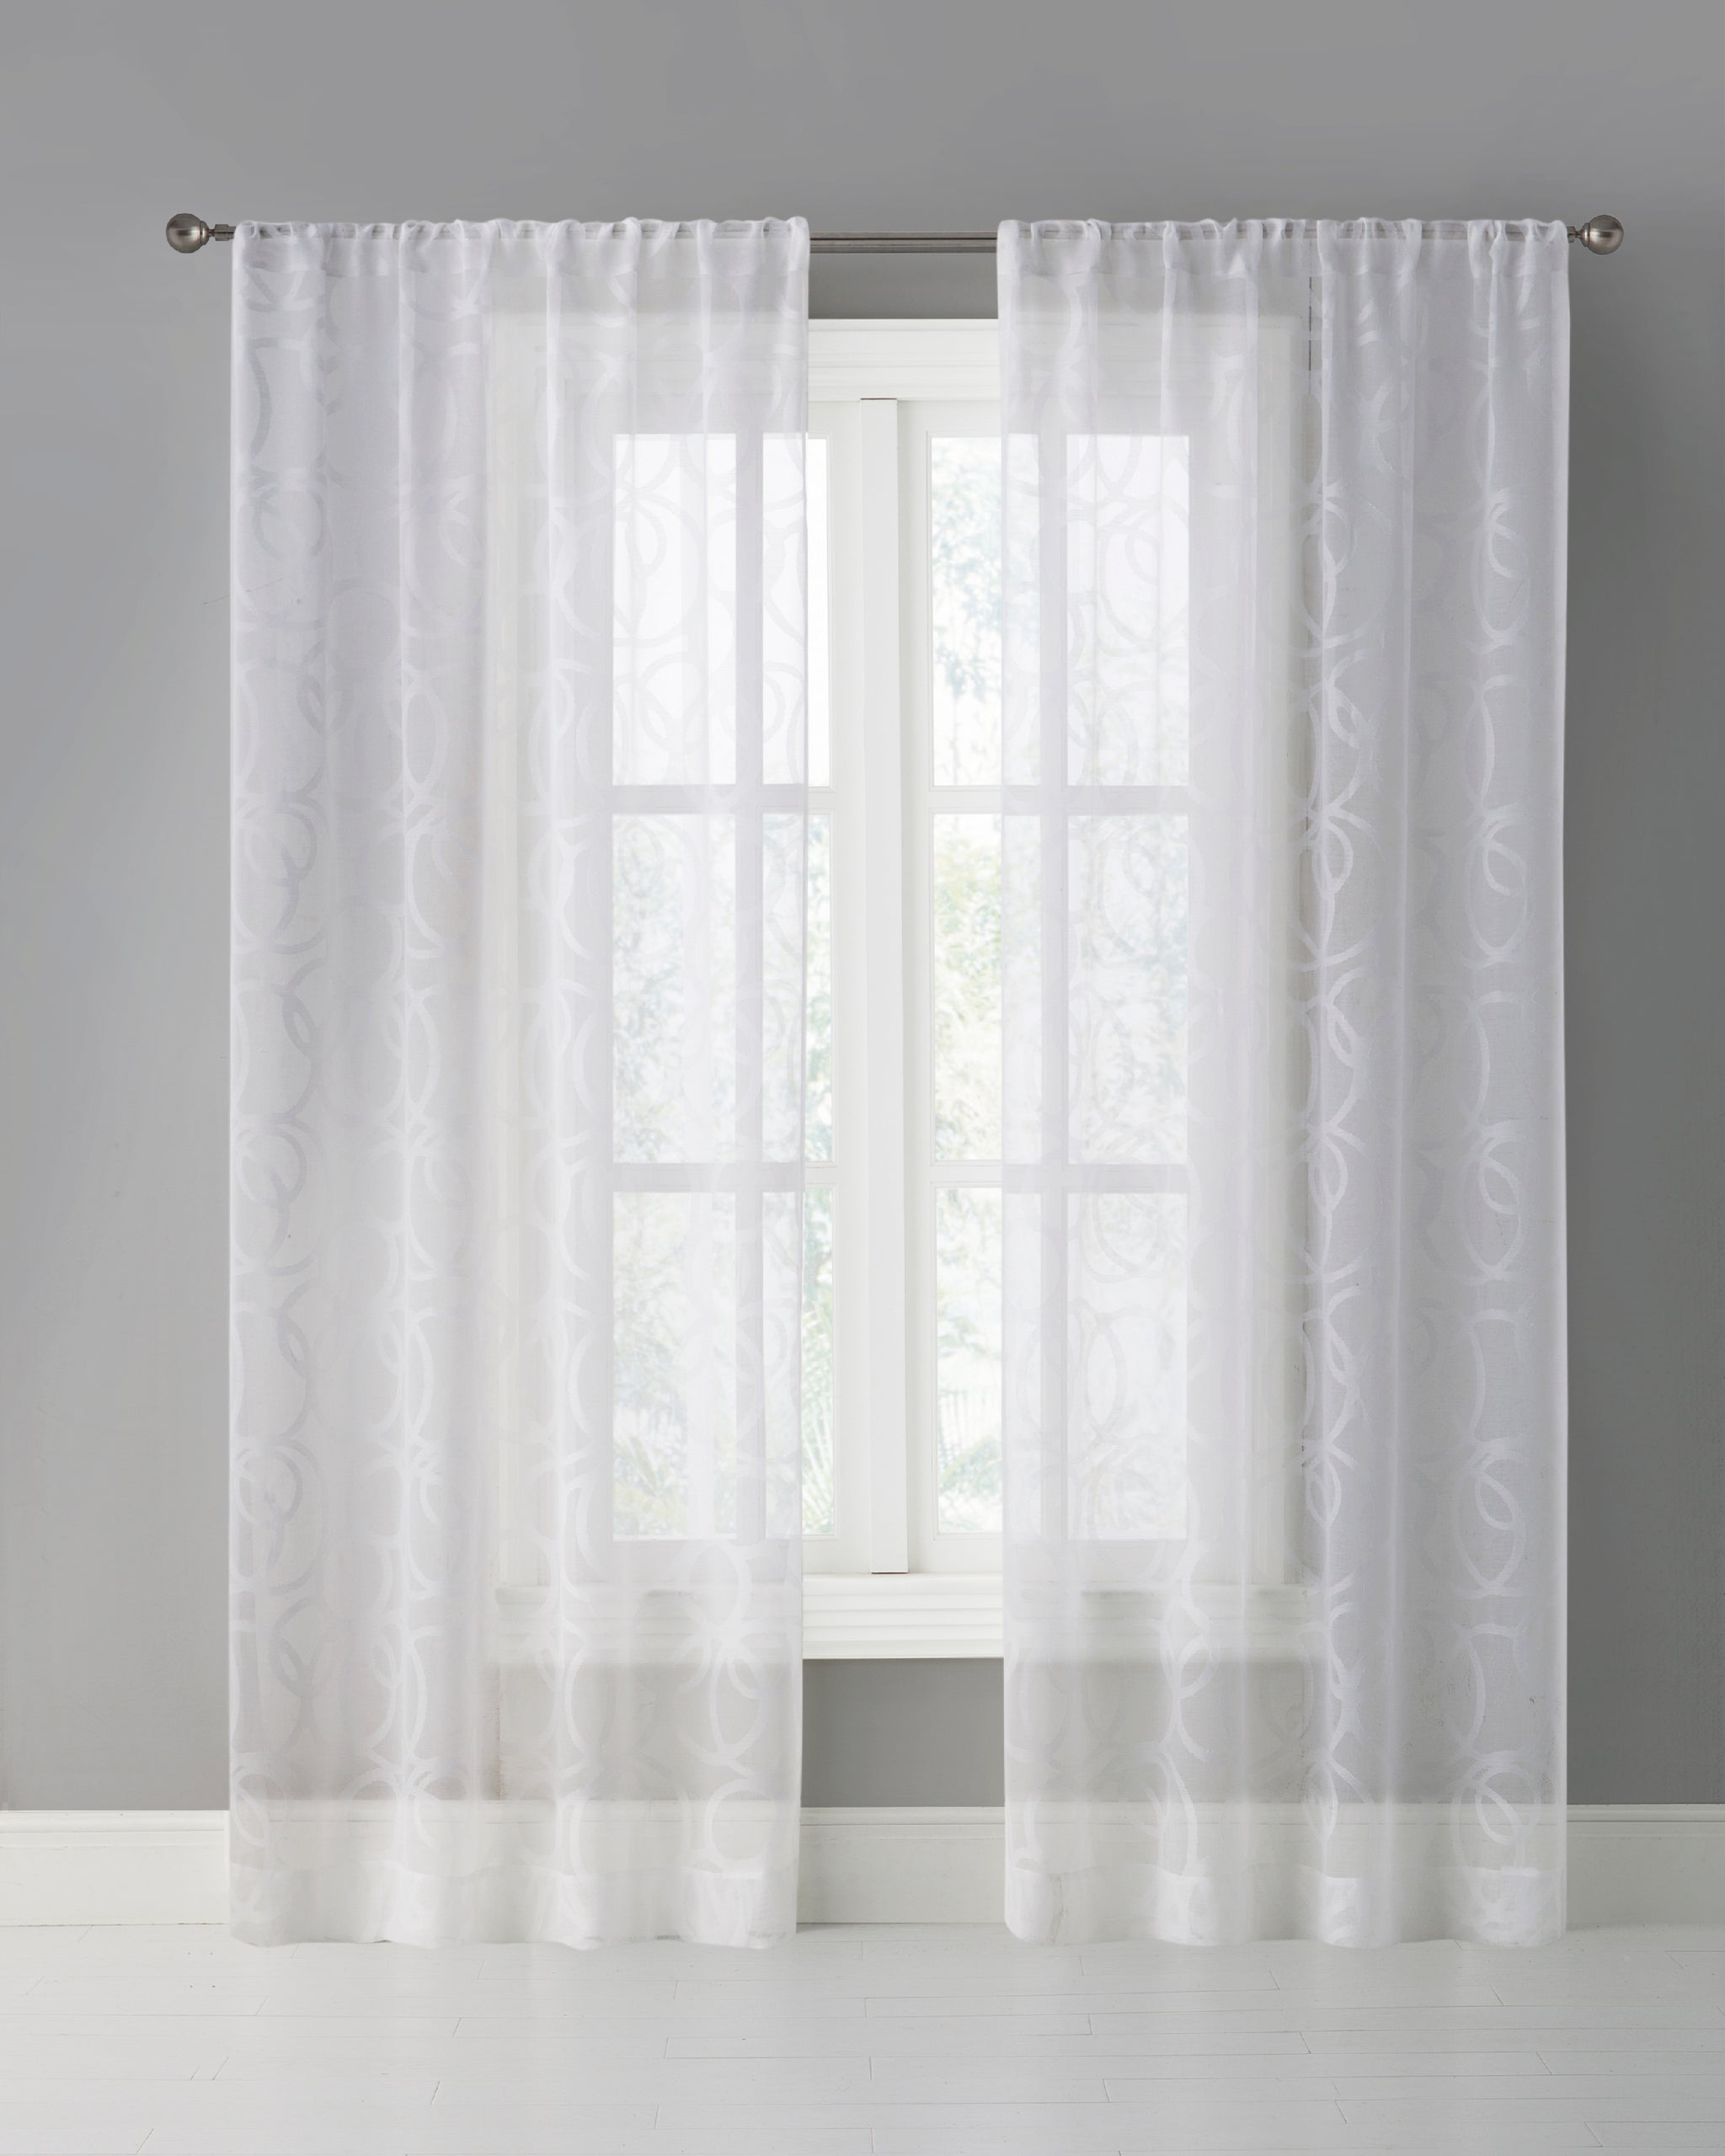 panels curtains voile pleat curtain soho panel sheer pinch p